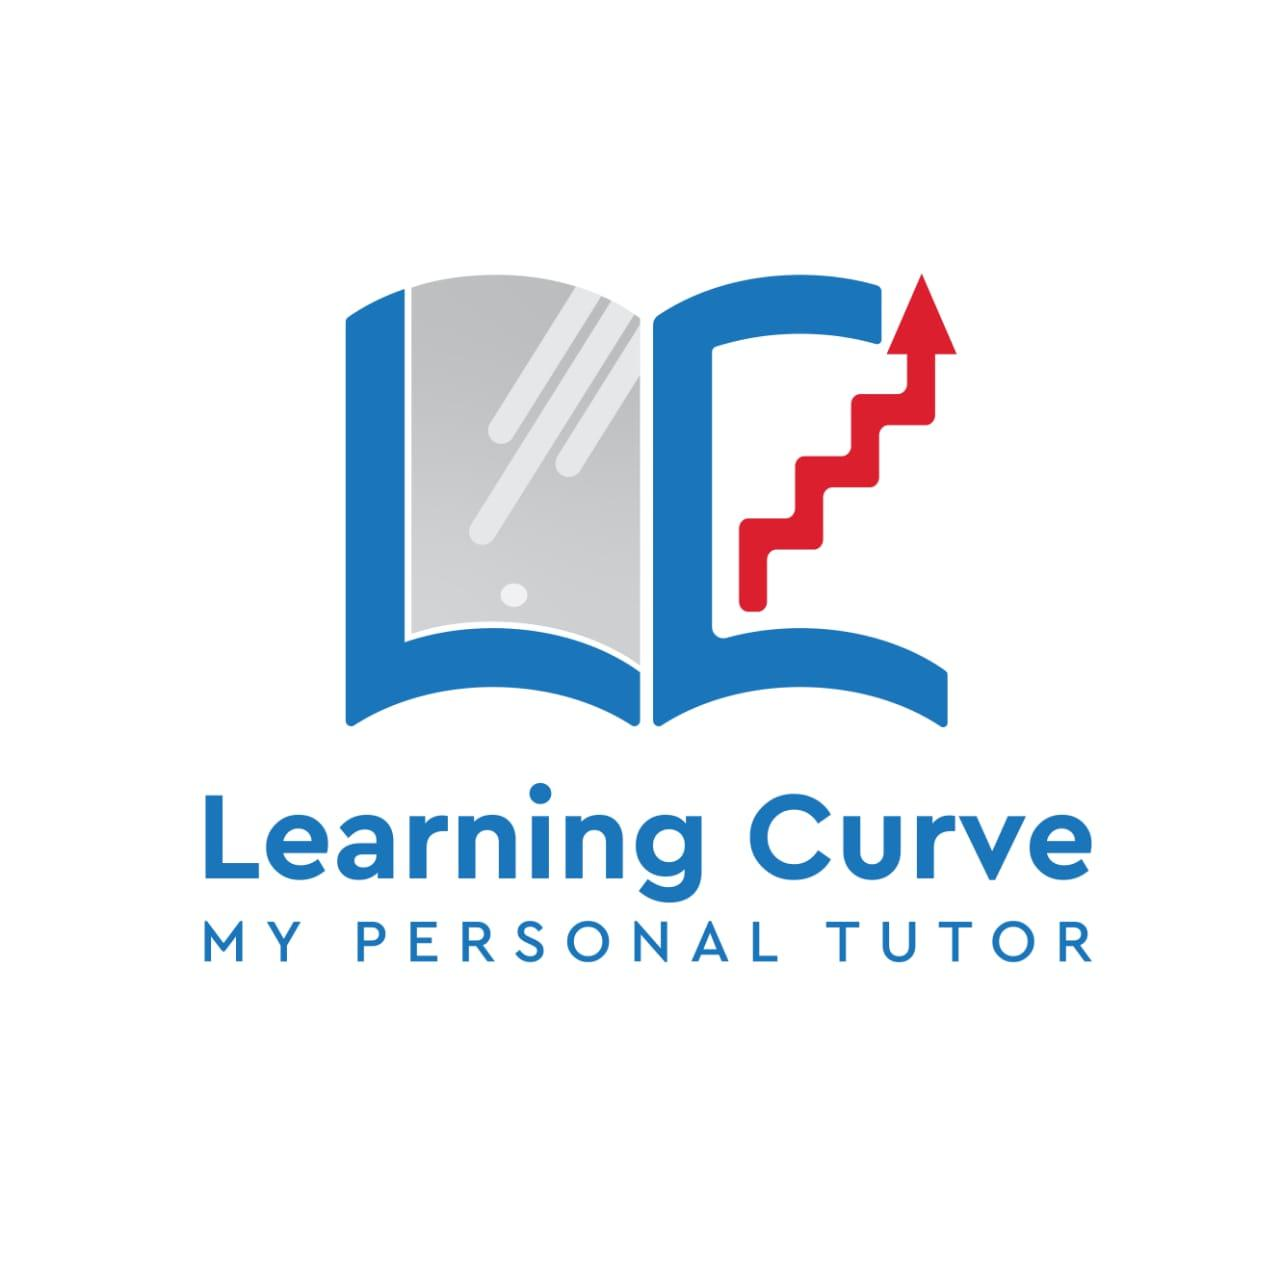 Learning Curve-My Personal Tutor Logo